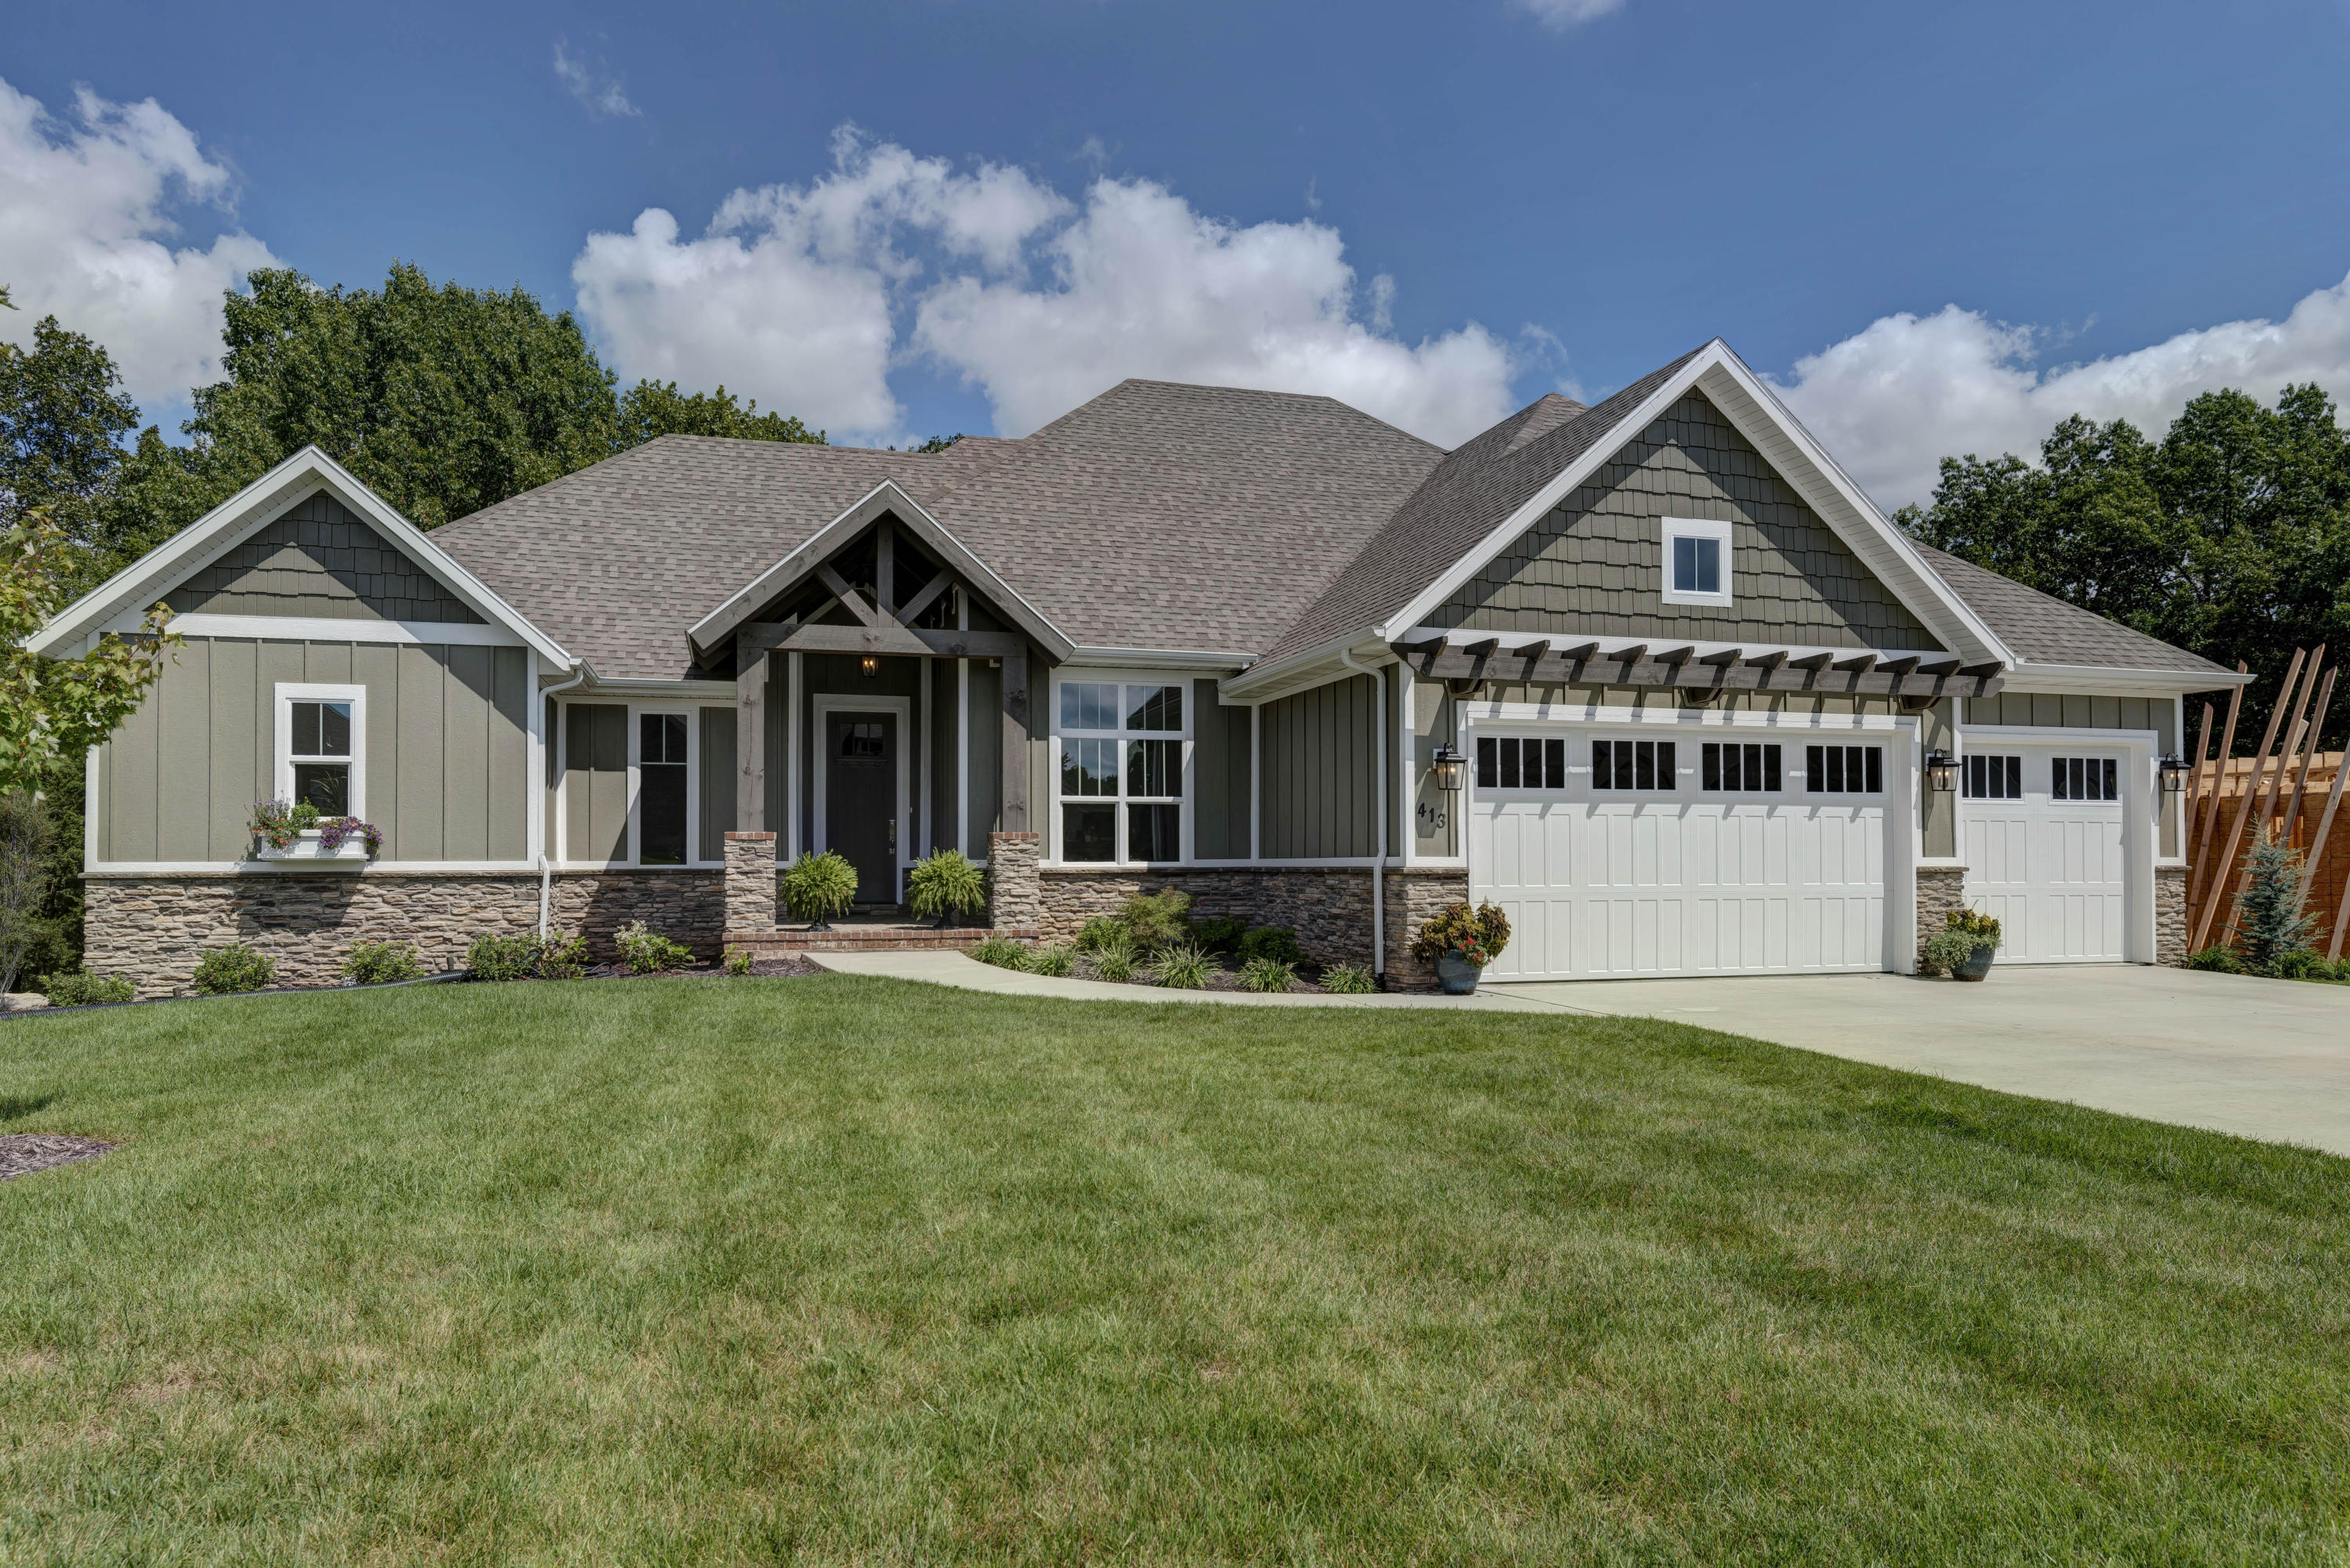 413 West Everwood Way Nixa, MO 65714